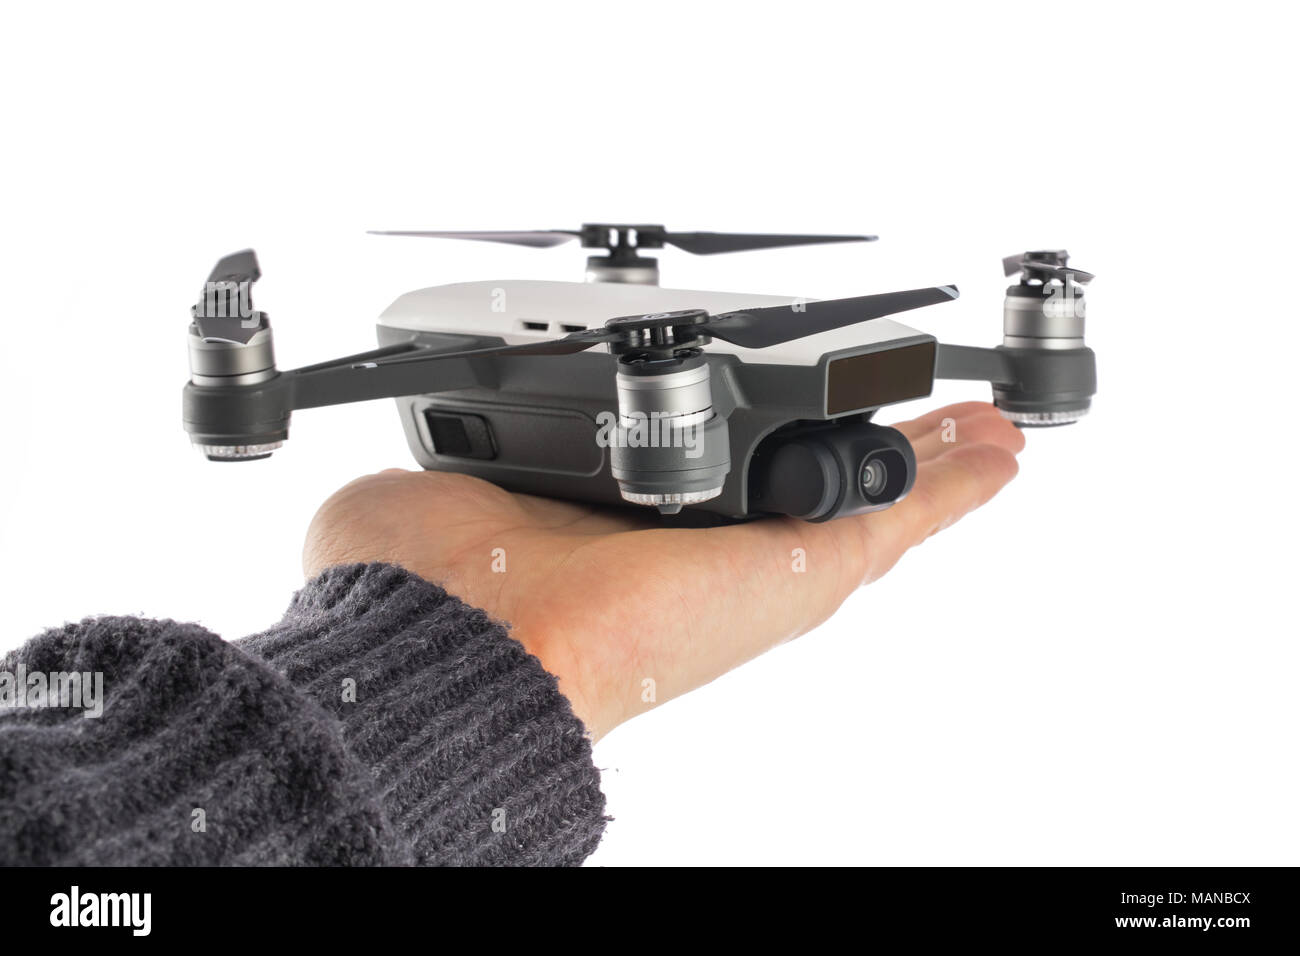 Varna, Bulgaria - February 14 ,2018: Flying drone quadcopter Dji Spark is mini drone that features all of DJI's signature technologies, isolated on wh - Stock Image